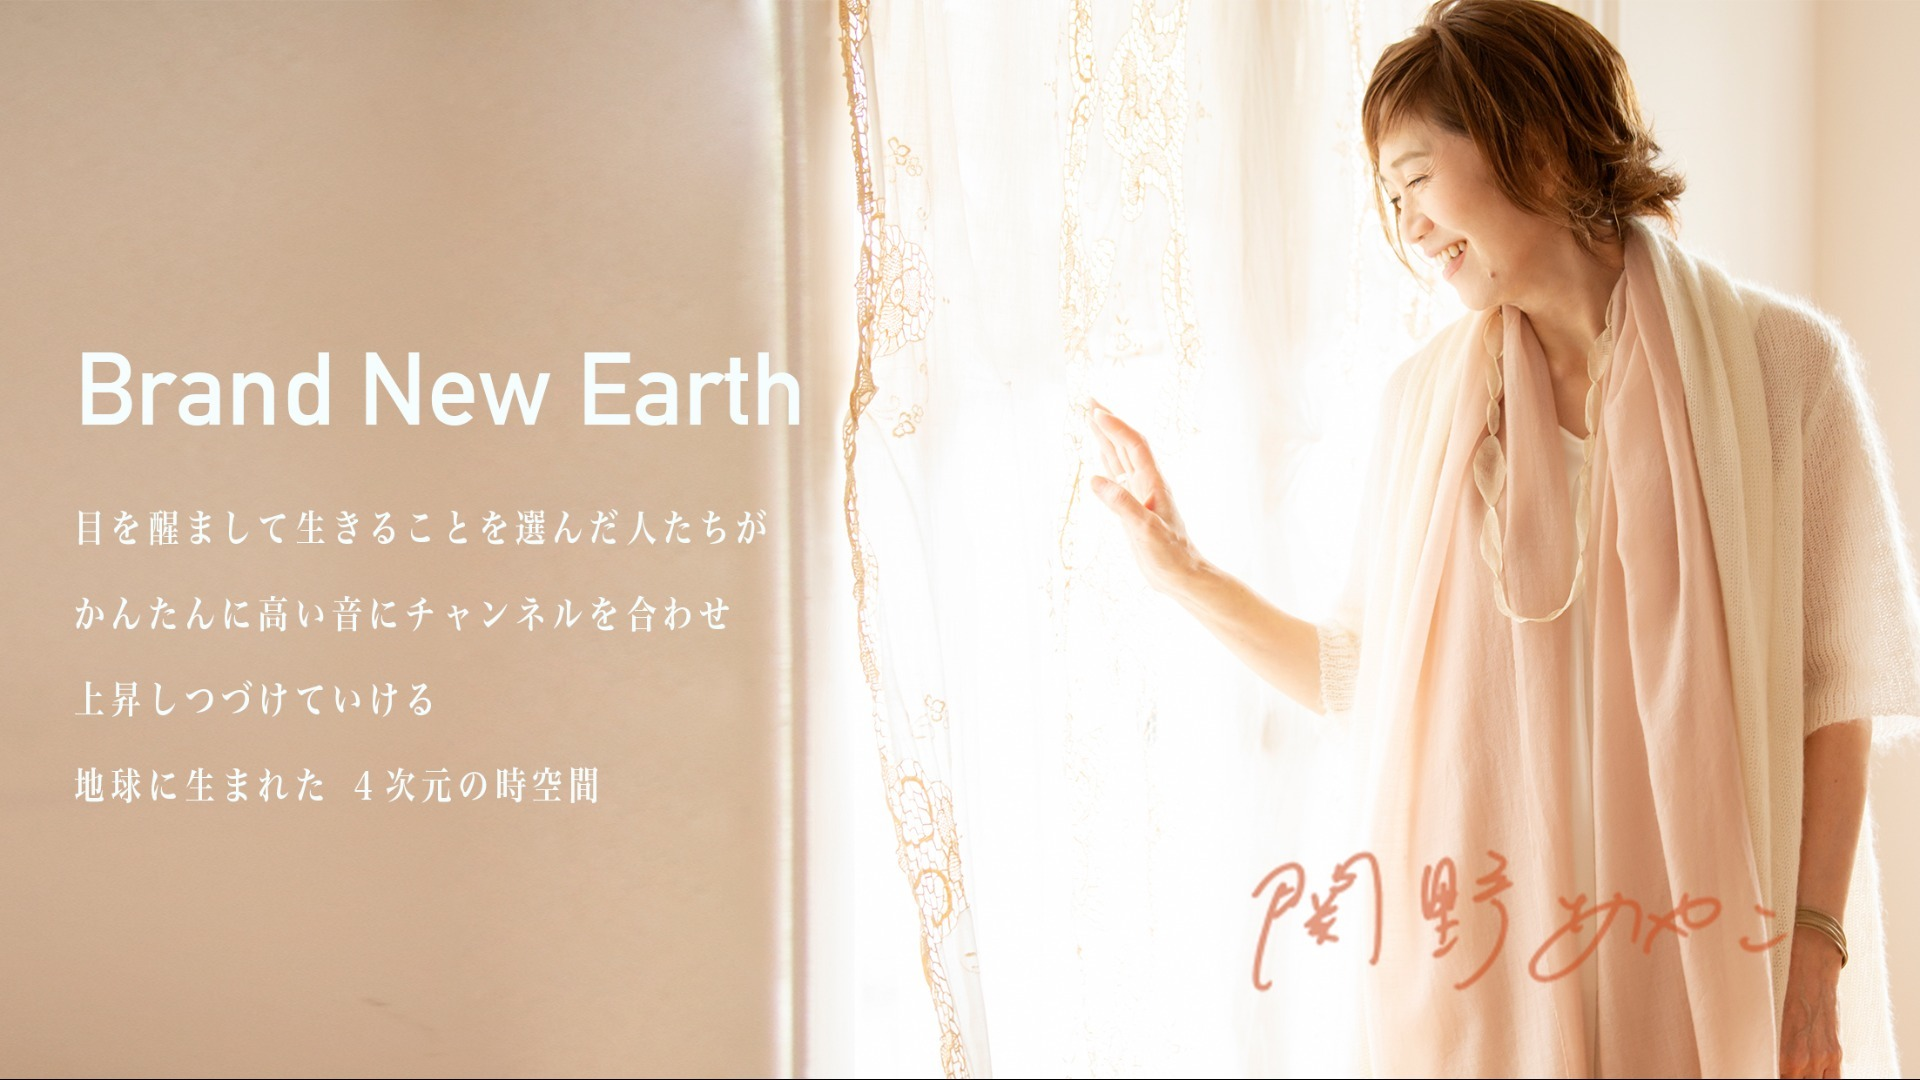 Brand New Earth